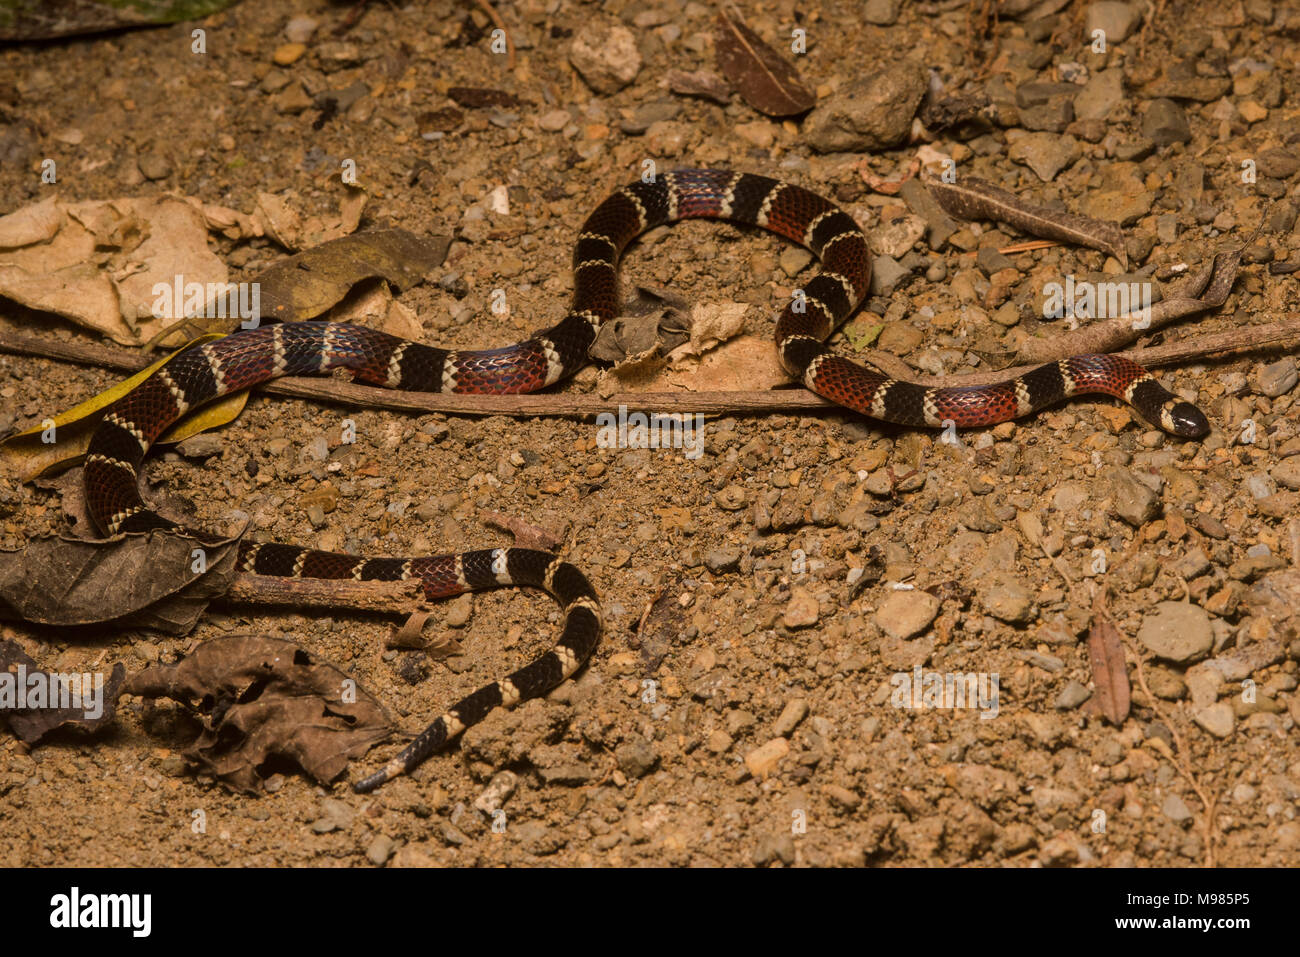 Touch Snake Stock Photos & Touch Snake Stock Images - Alamy